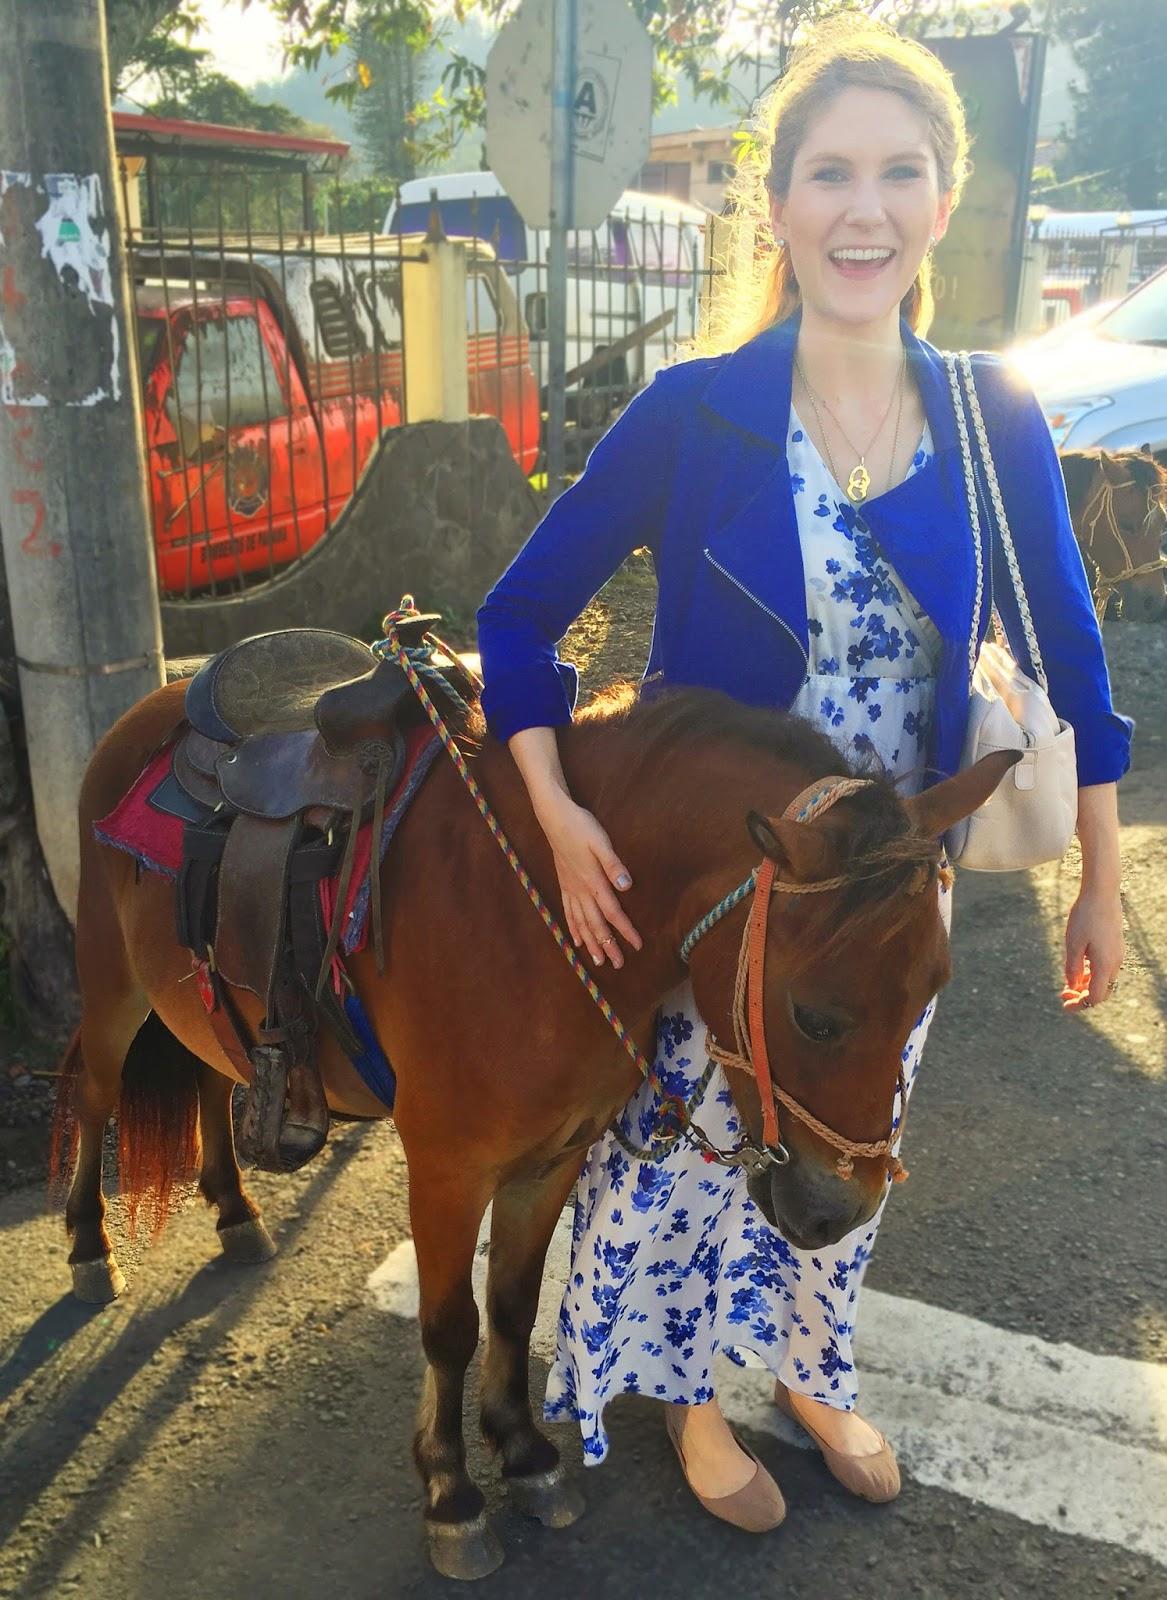 Cute Pony on my vacations in Boquete, Panama